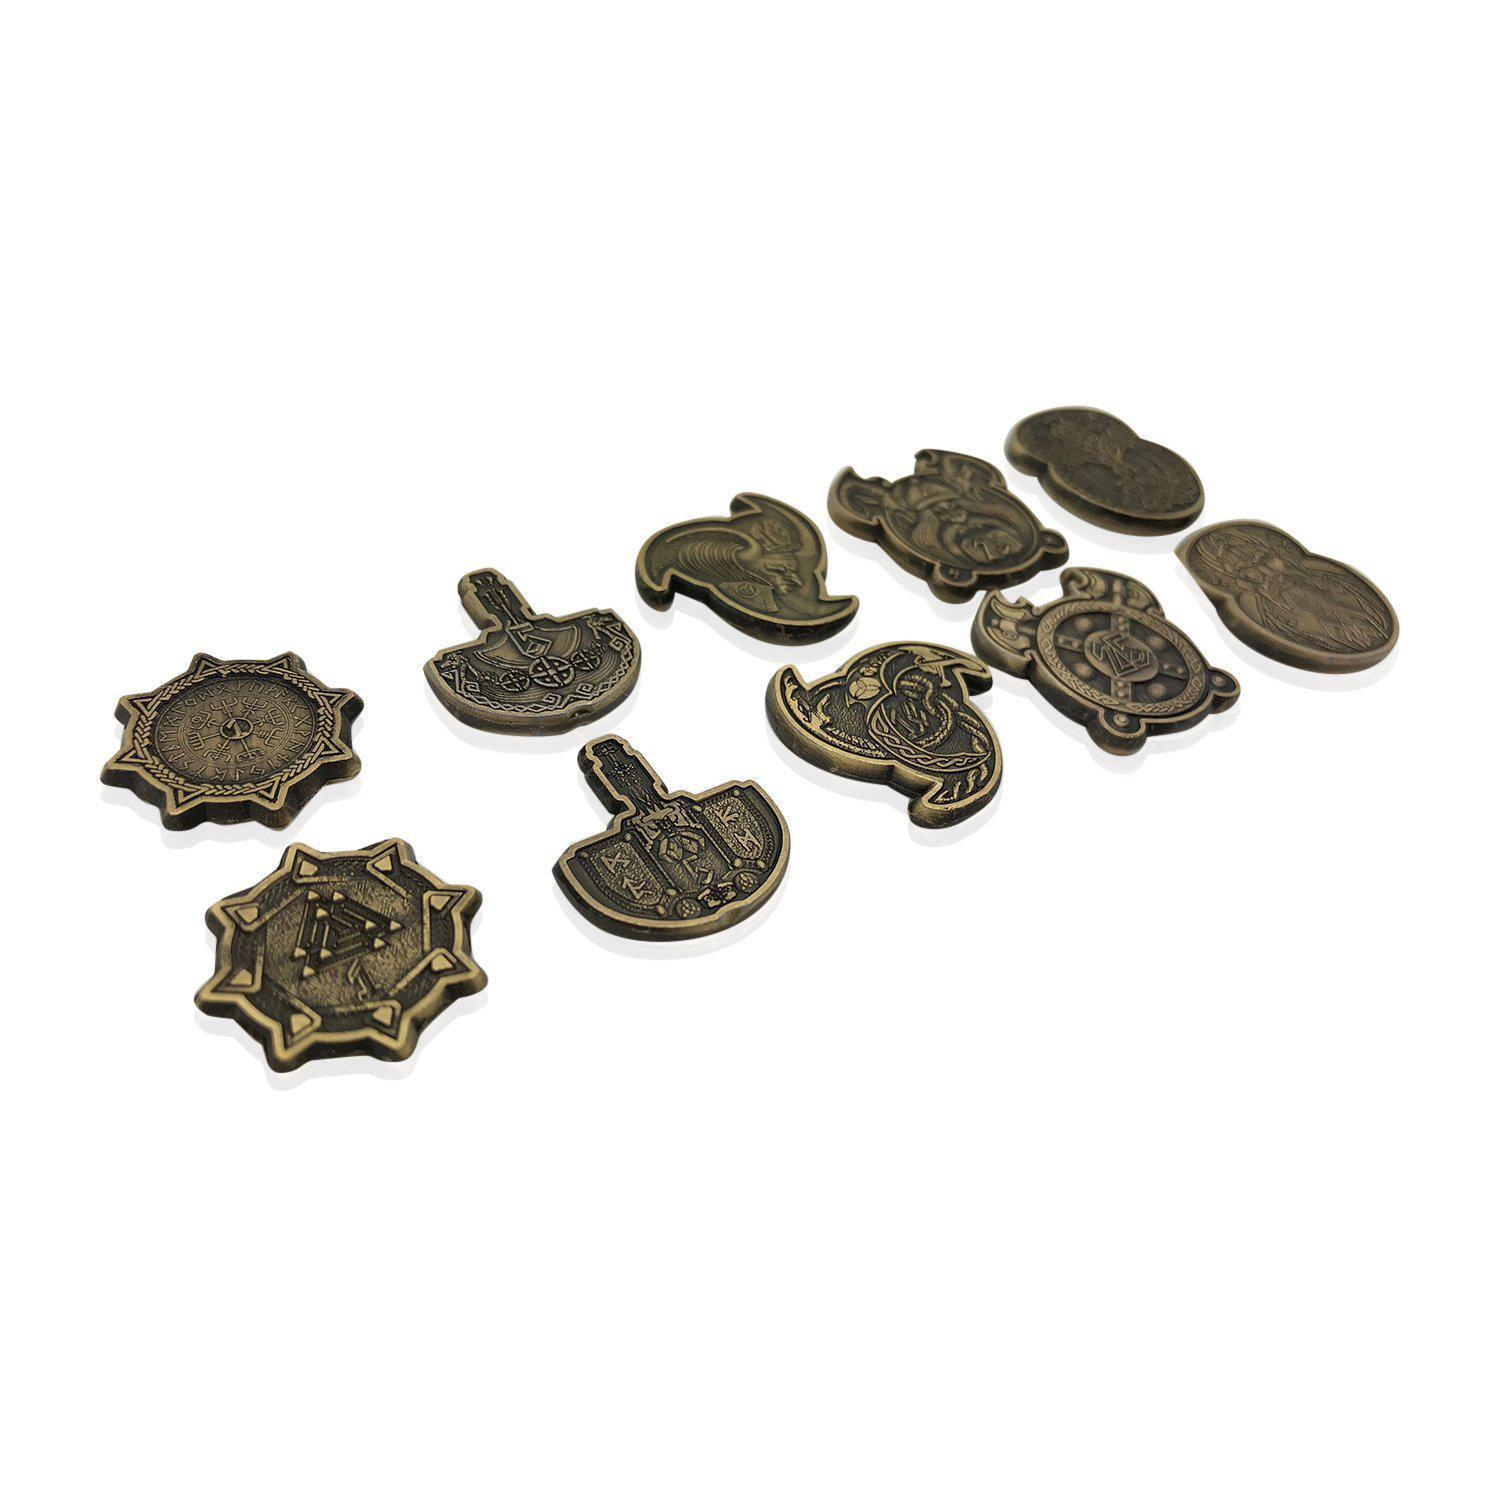 Adventure Coins Norse 10 Pack By Norse Foundry D20 Collective Or perhaps individual dice besides d20s in metals? adventure coins norse 10 pack by norse foundry d20 collective